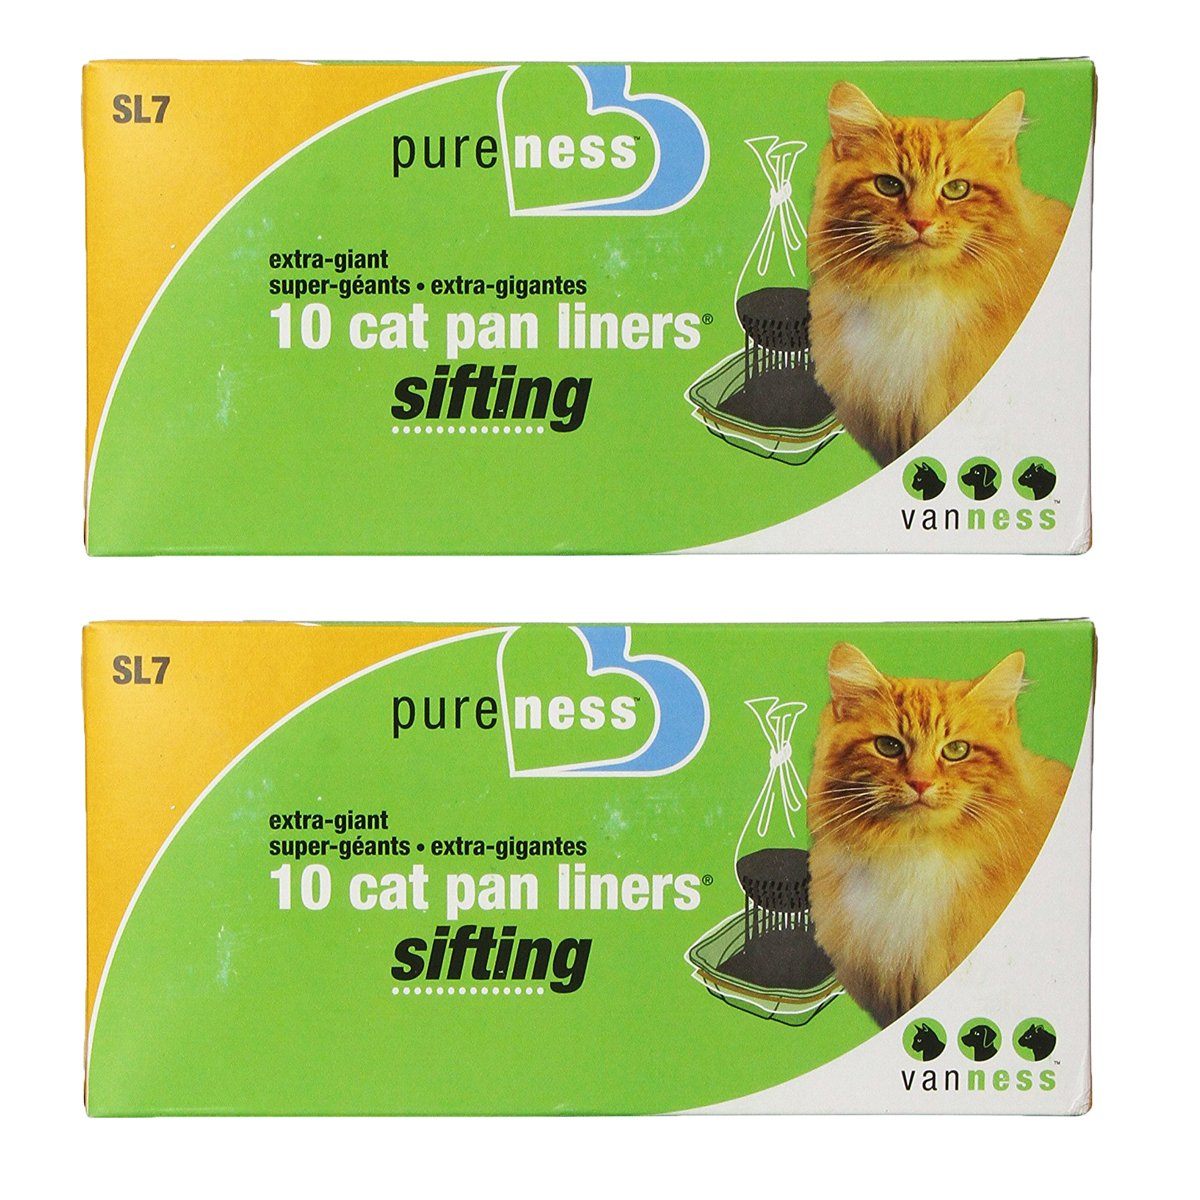 Van Ness Extra Giant Sifting Cat Pan Liners, 10 Count, 2 Pack